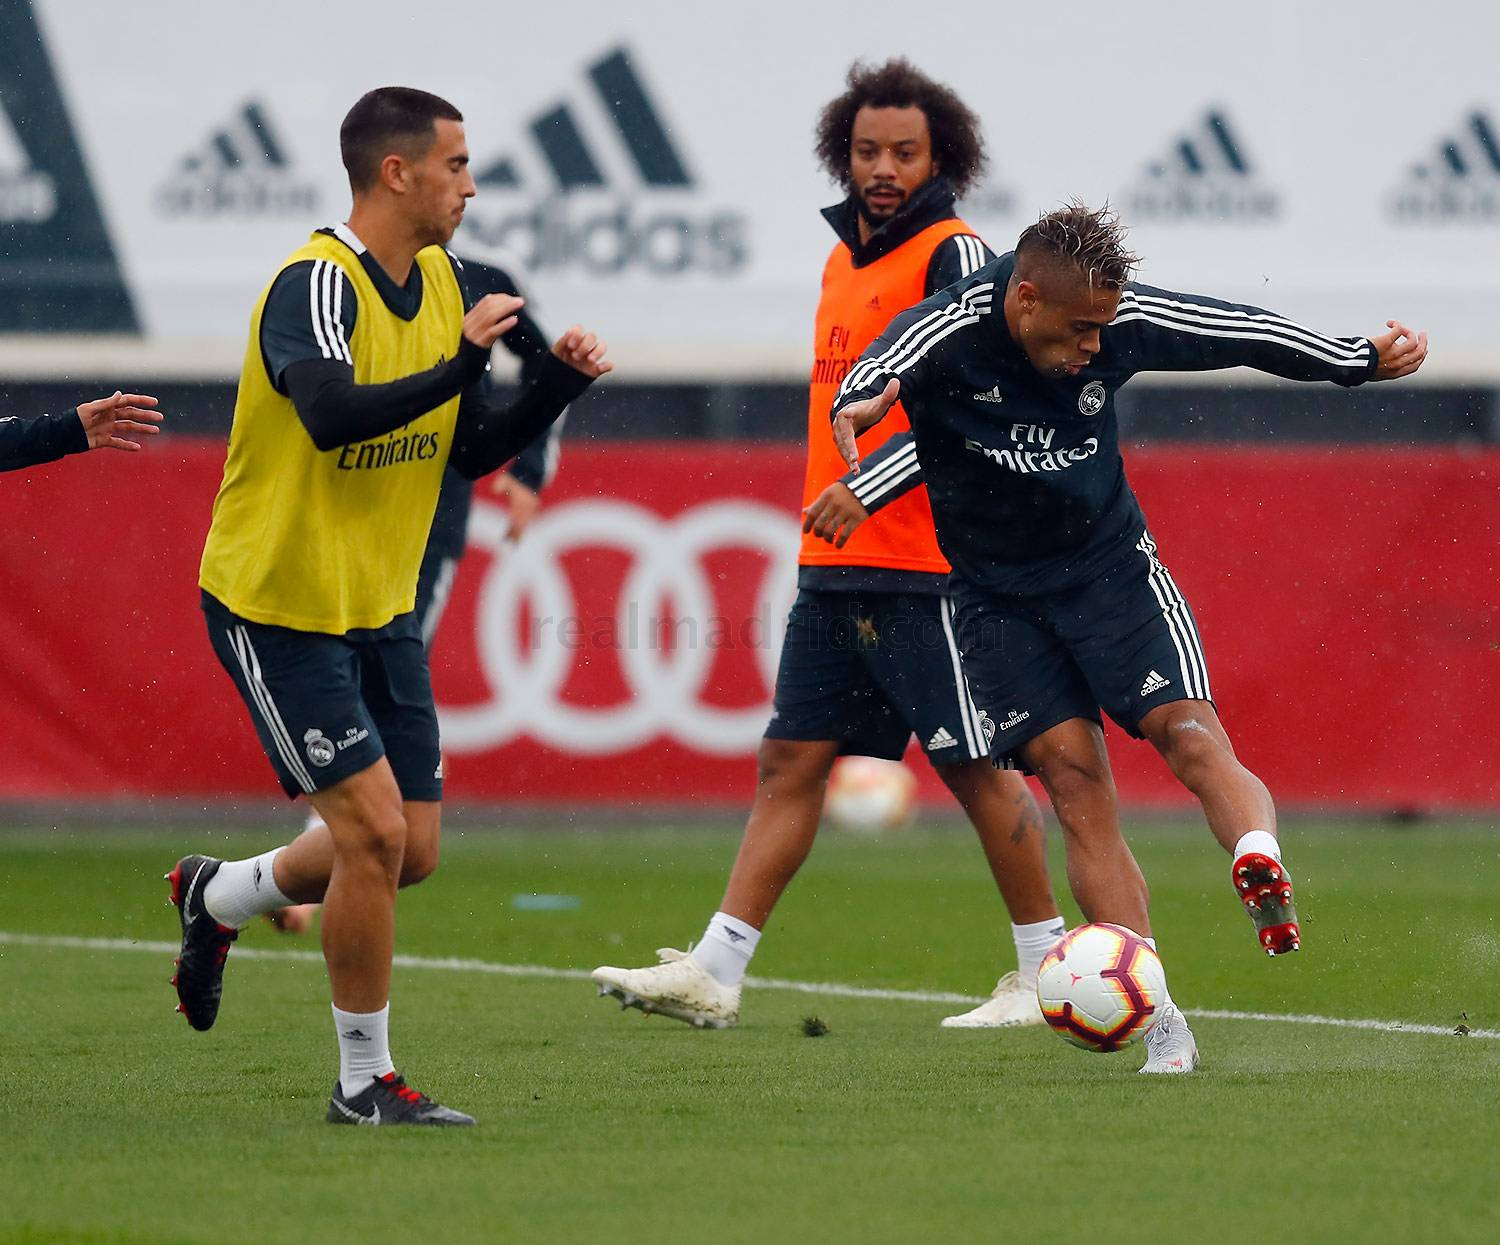 Real Madrid - Entrenamiento del Real Madrid - 10-10-2018